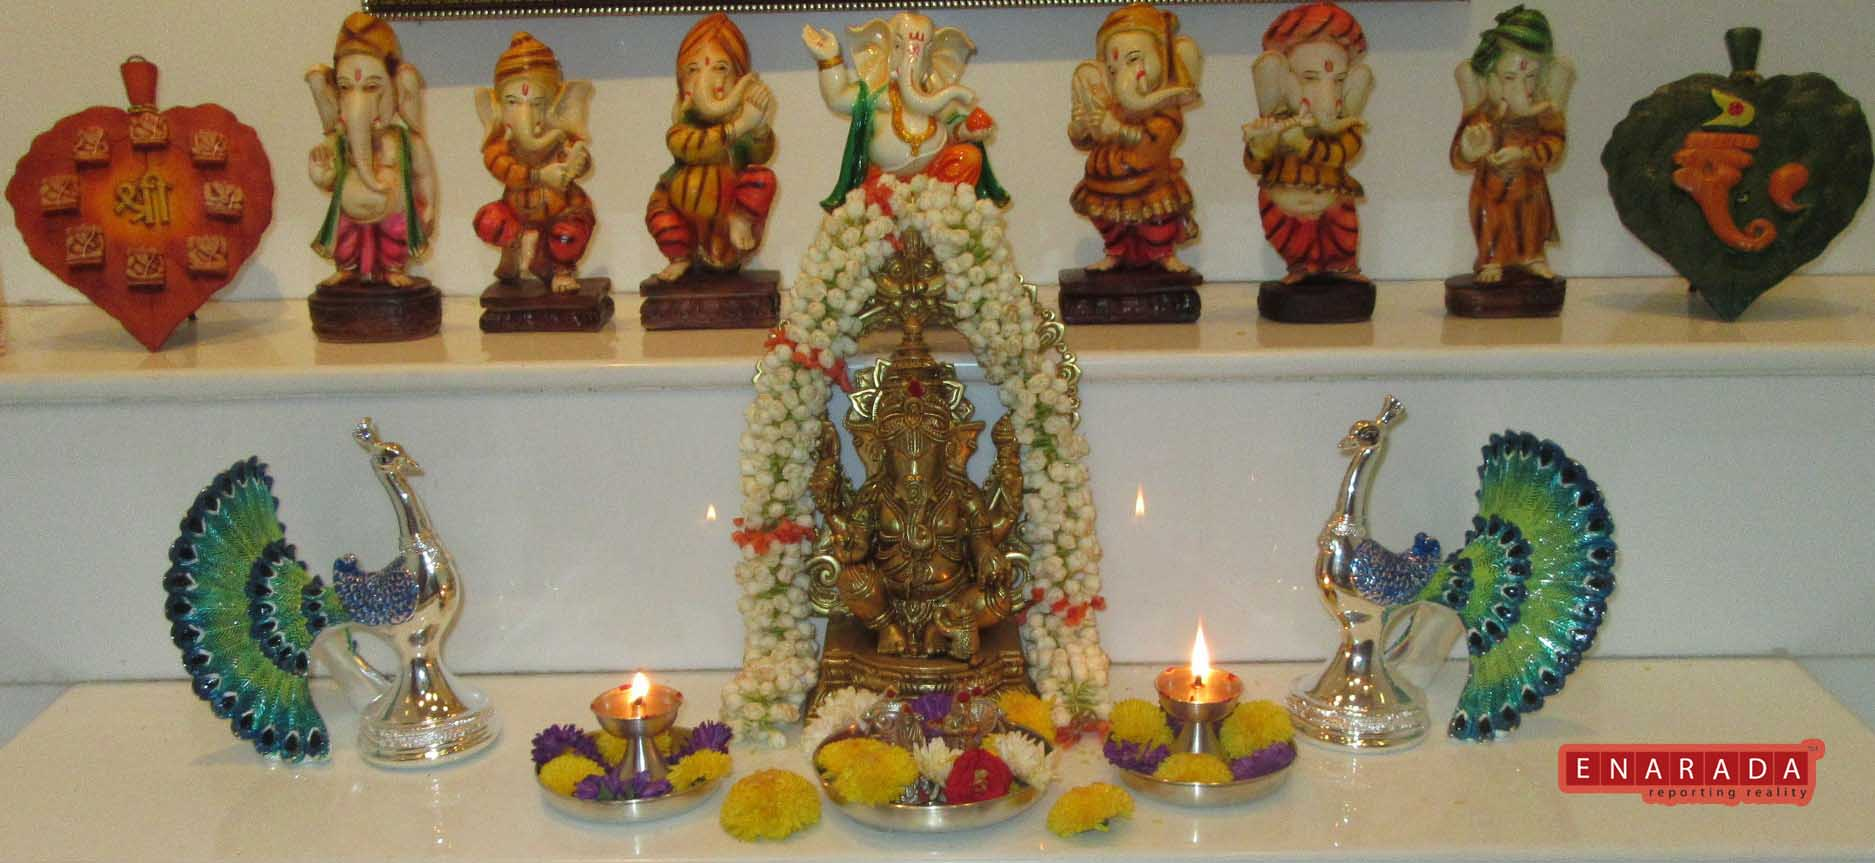 Different Ganesha Idols. eNarada Picture